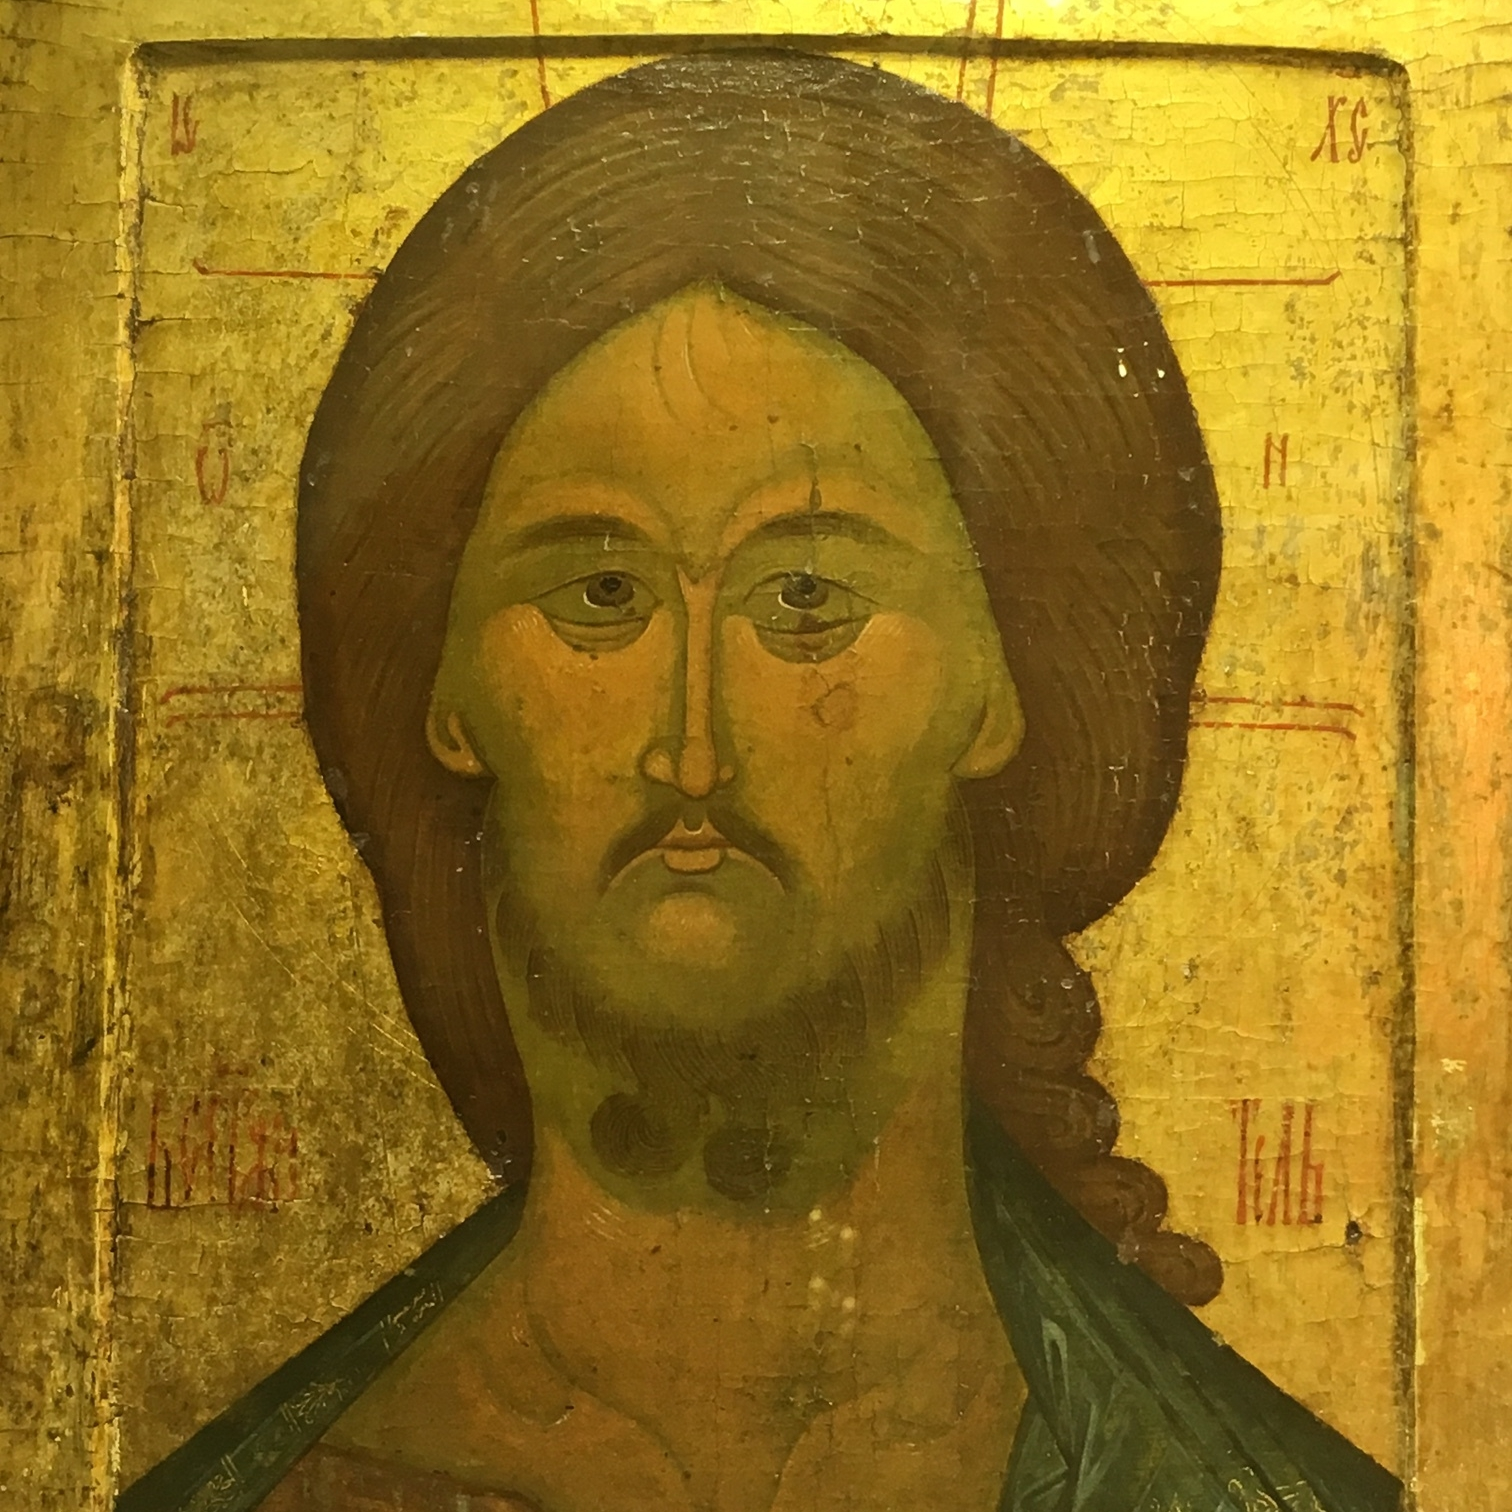 Icon from the Faberge Museum, St Petersburg by The Doubtful Traveller